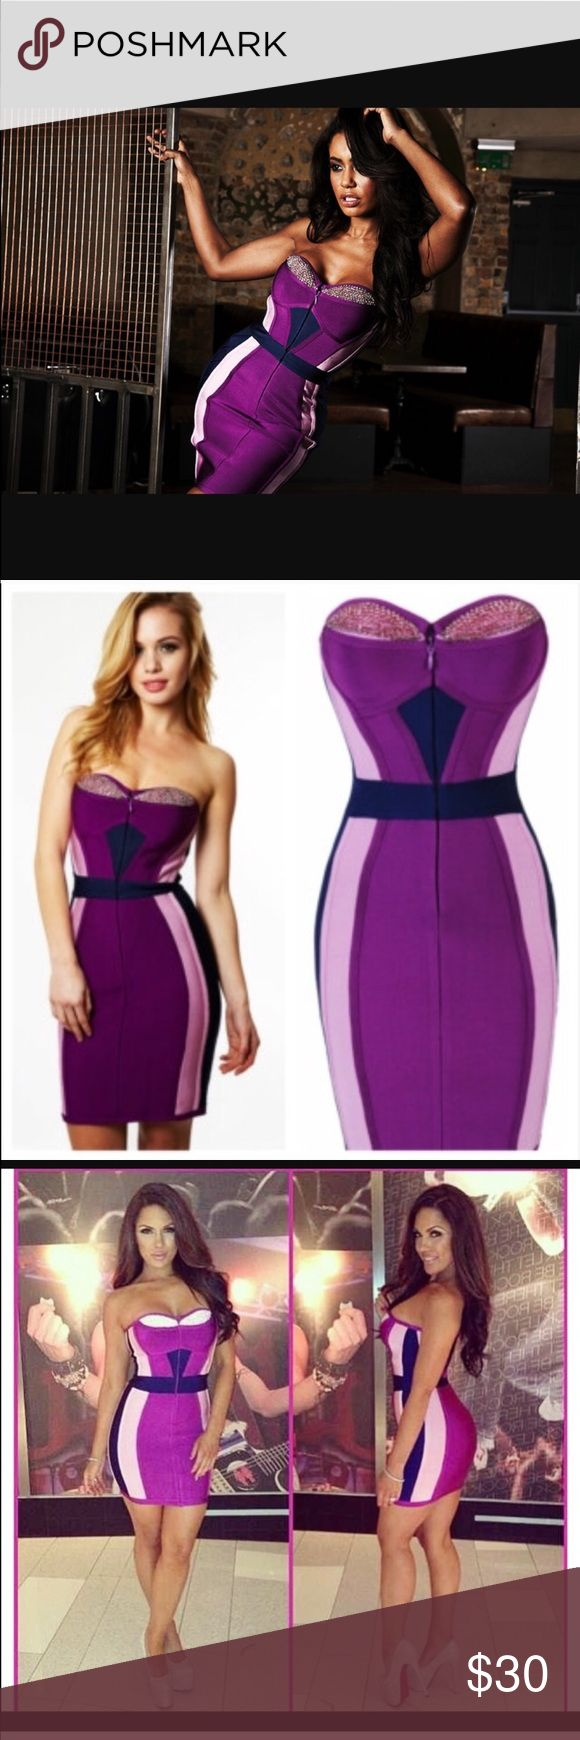 Sexy purple body contour bandage dress Sexy purple body contour bandage dress. IM MOVING I NEED TO GET RID OF ALOT OF MY CLOTHES!!! ITS PRICED SO LOW SO I CAN SELL THEM QUICKLY!!! Dresses